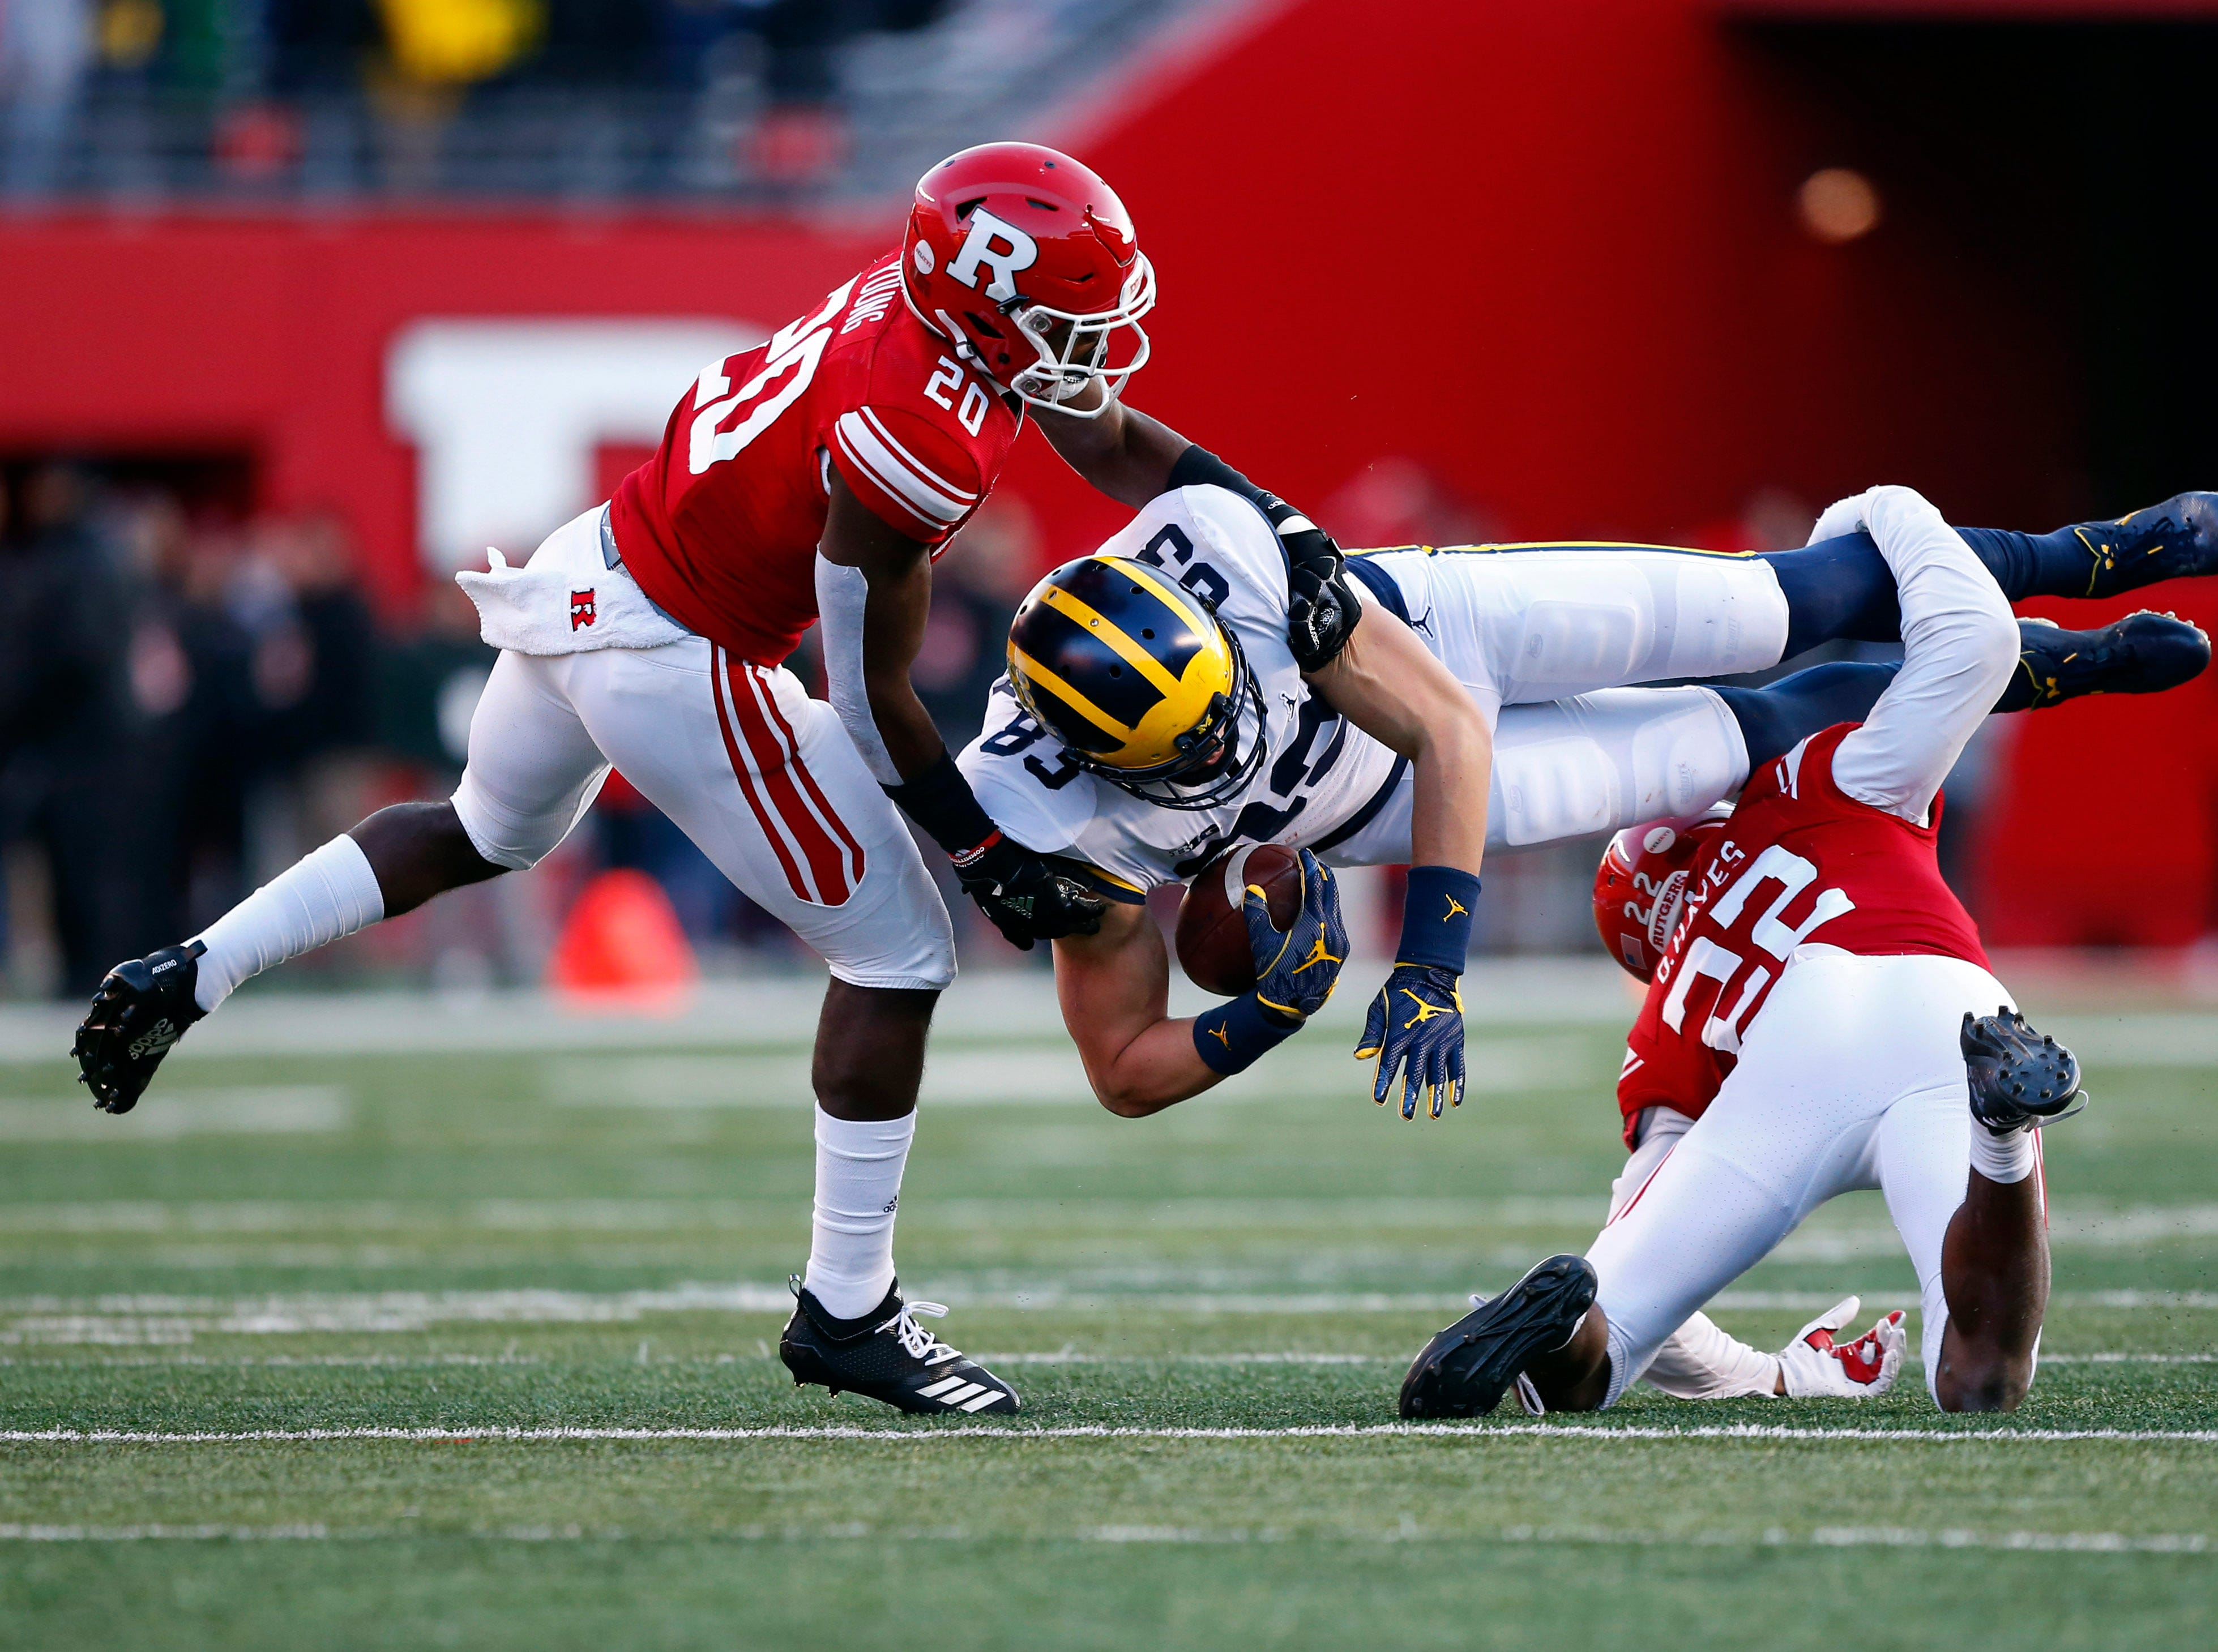 Michigan Wolverines tight end Zach Gentry (83)  is tackled by Rutgers Scarlet Knights defensive backs Avery Young (20) and Damon Hayes (22) during the first half at High Point Solutions Stadium.